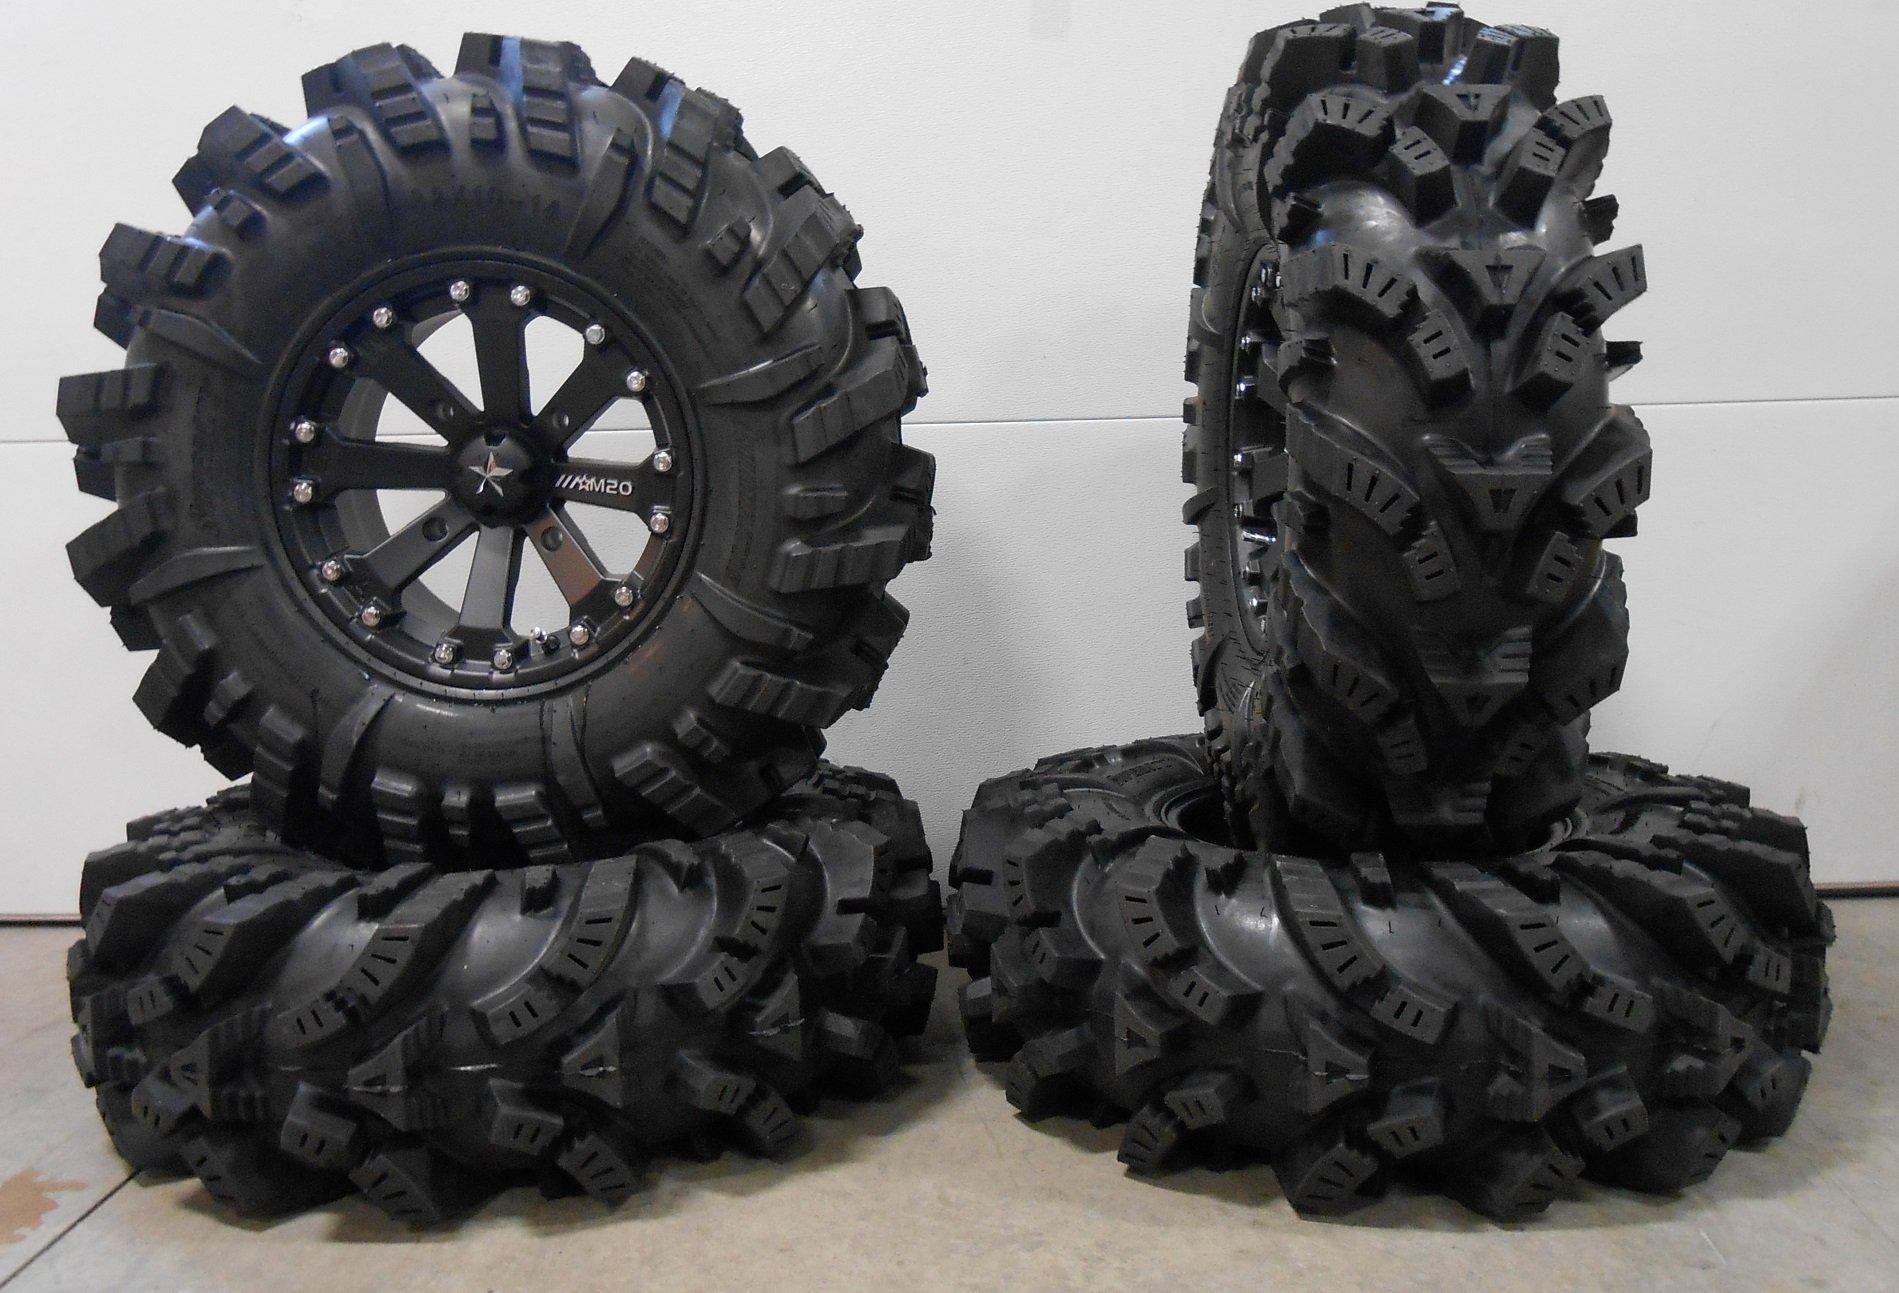 Bundle - 9 Items: MSA Black Kore 14'' ATV Wheels 32'' Intimidator Tires [4x156 Bolt Pattern 12mmx1.5 Lug Kit]